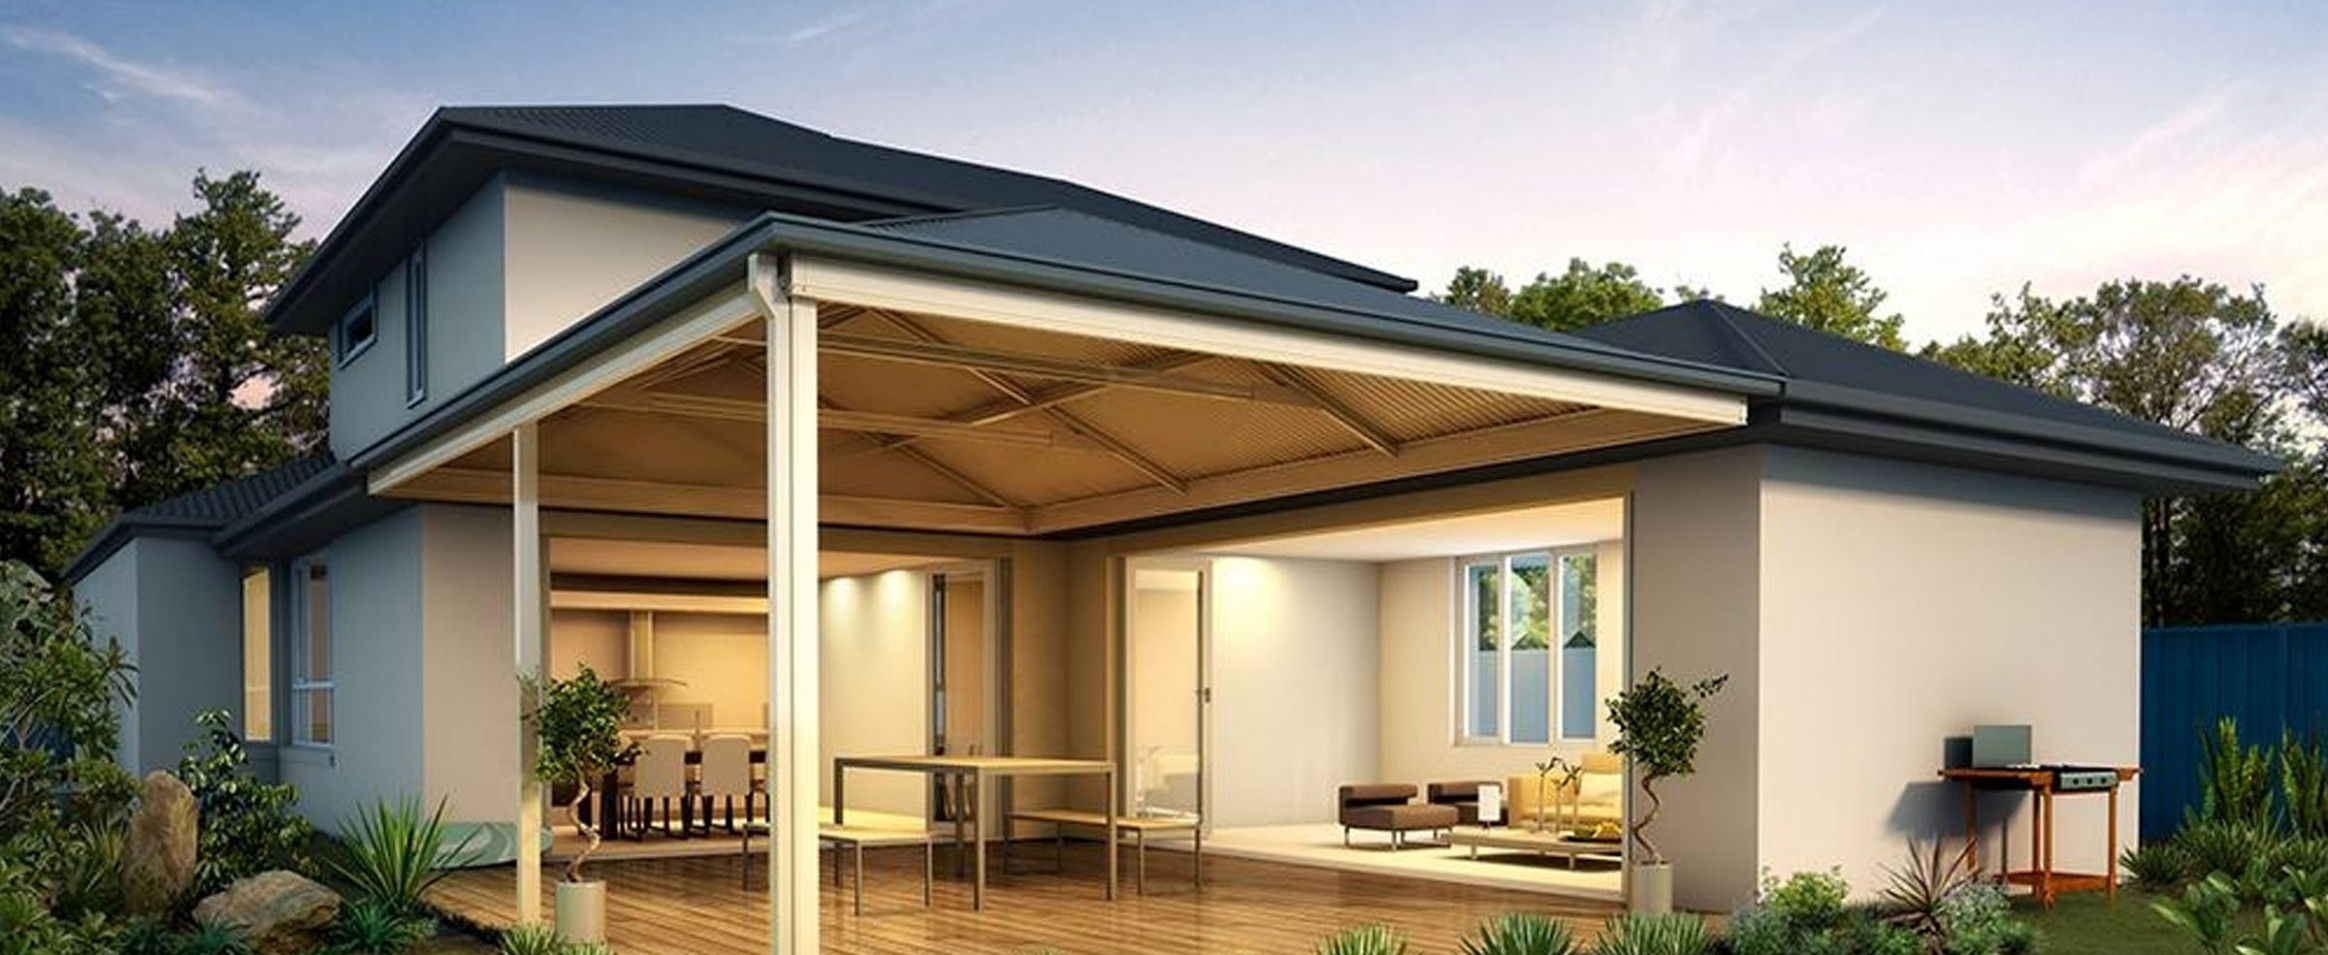 Carports And Verandahs | Southside Group Carport Attached To Hip Roof